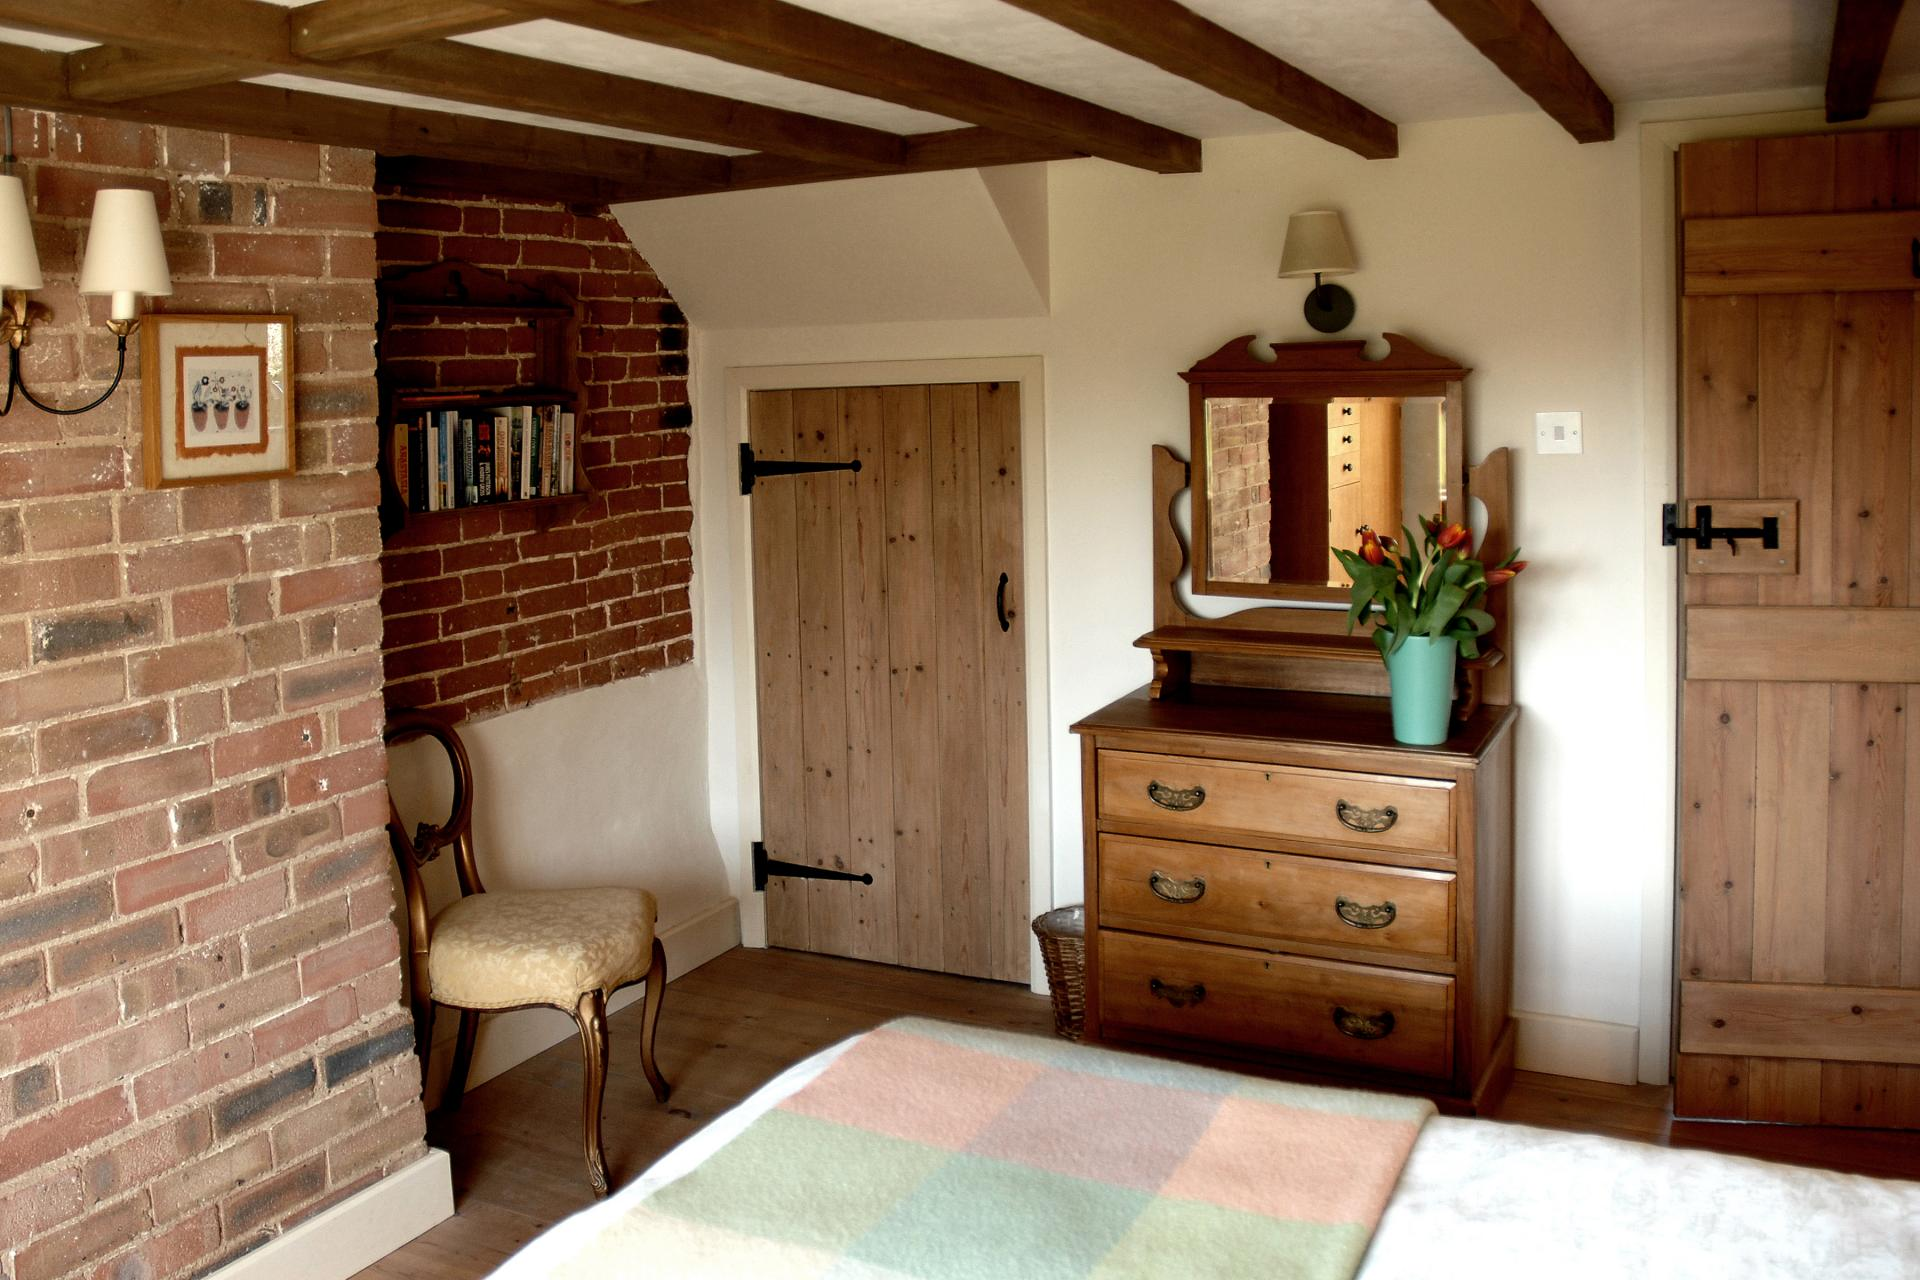 Best self catering accommodation in the UK: The Little Barn, North Yorkshire